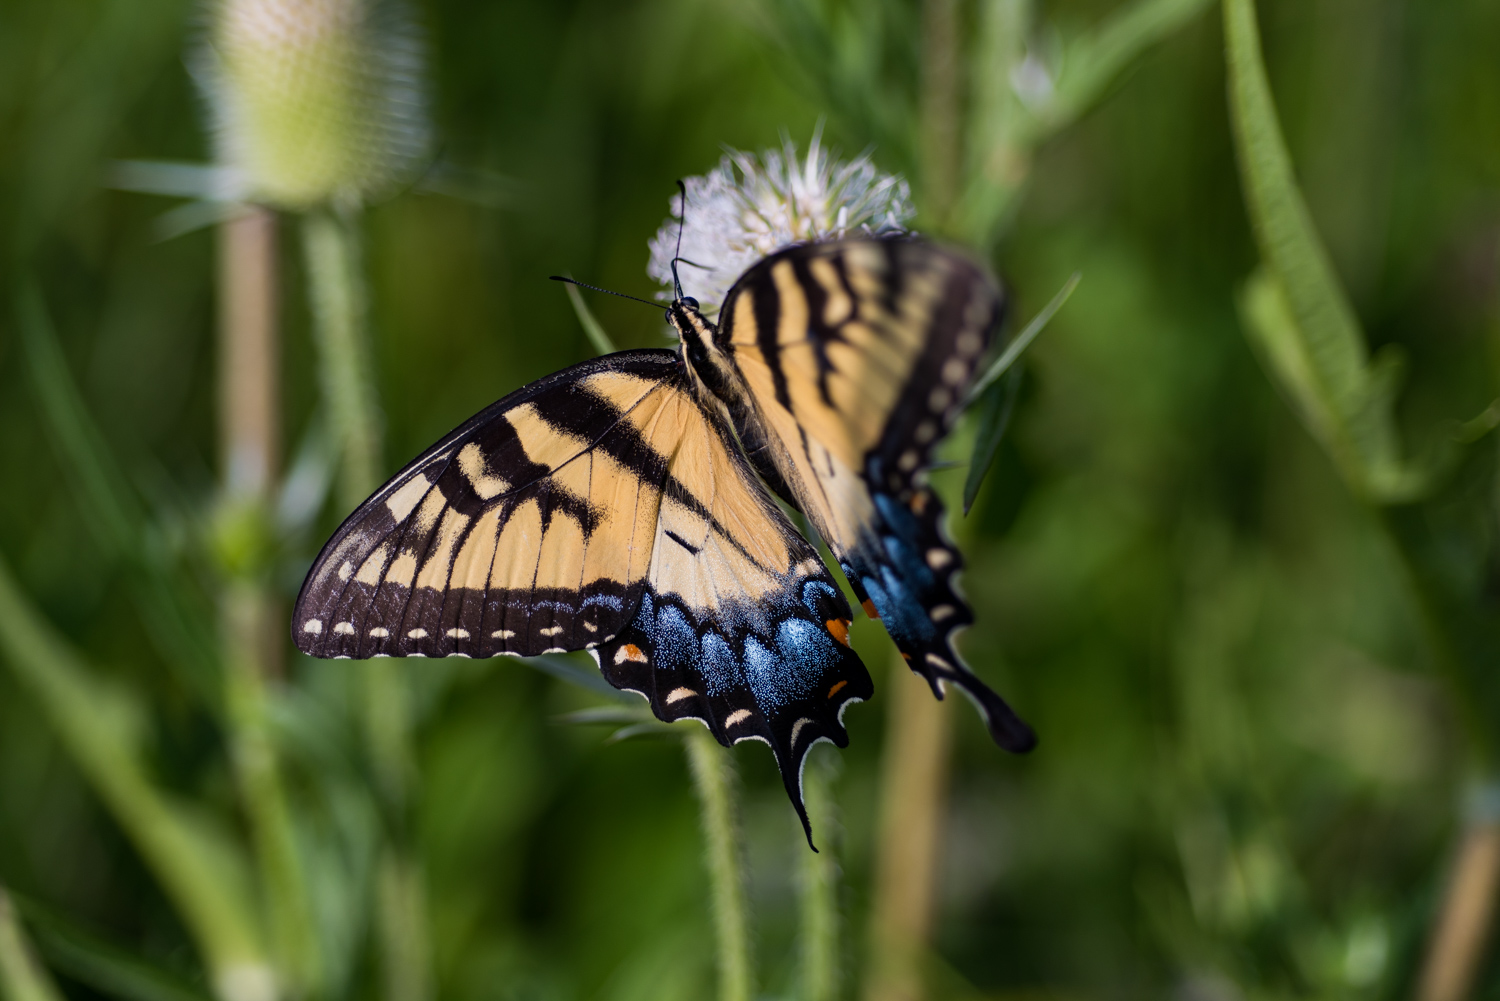 Color Photograph, Insect, Flower, Butterfly, Thistle, Midwest, Interior Design, Wall Art